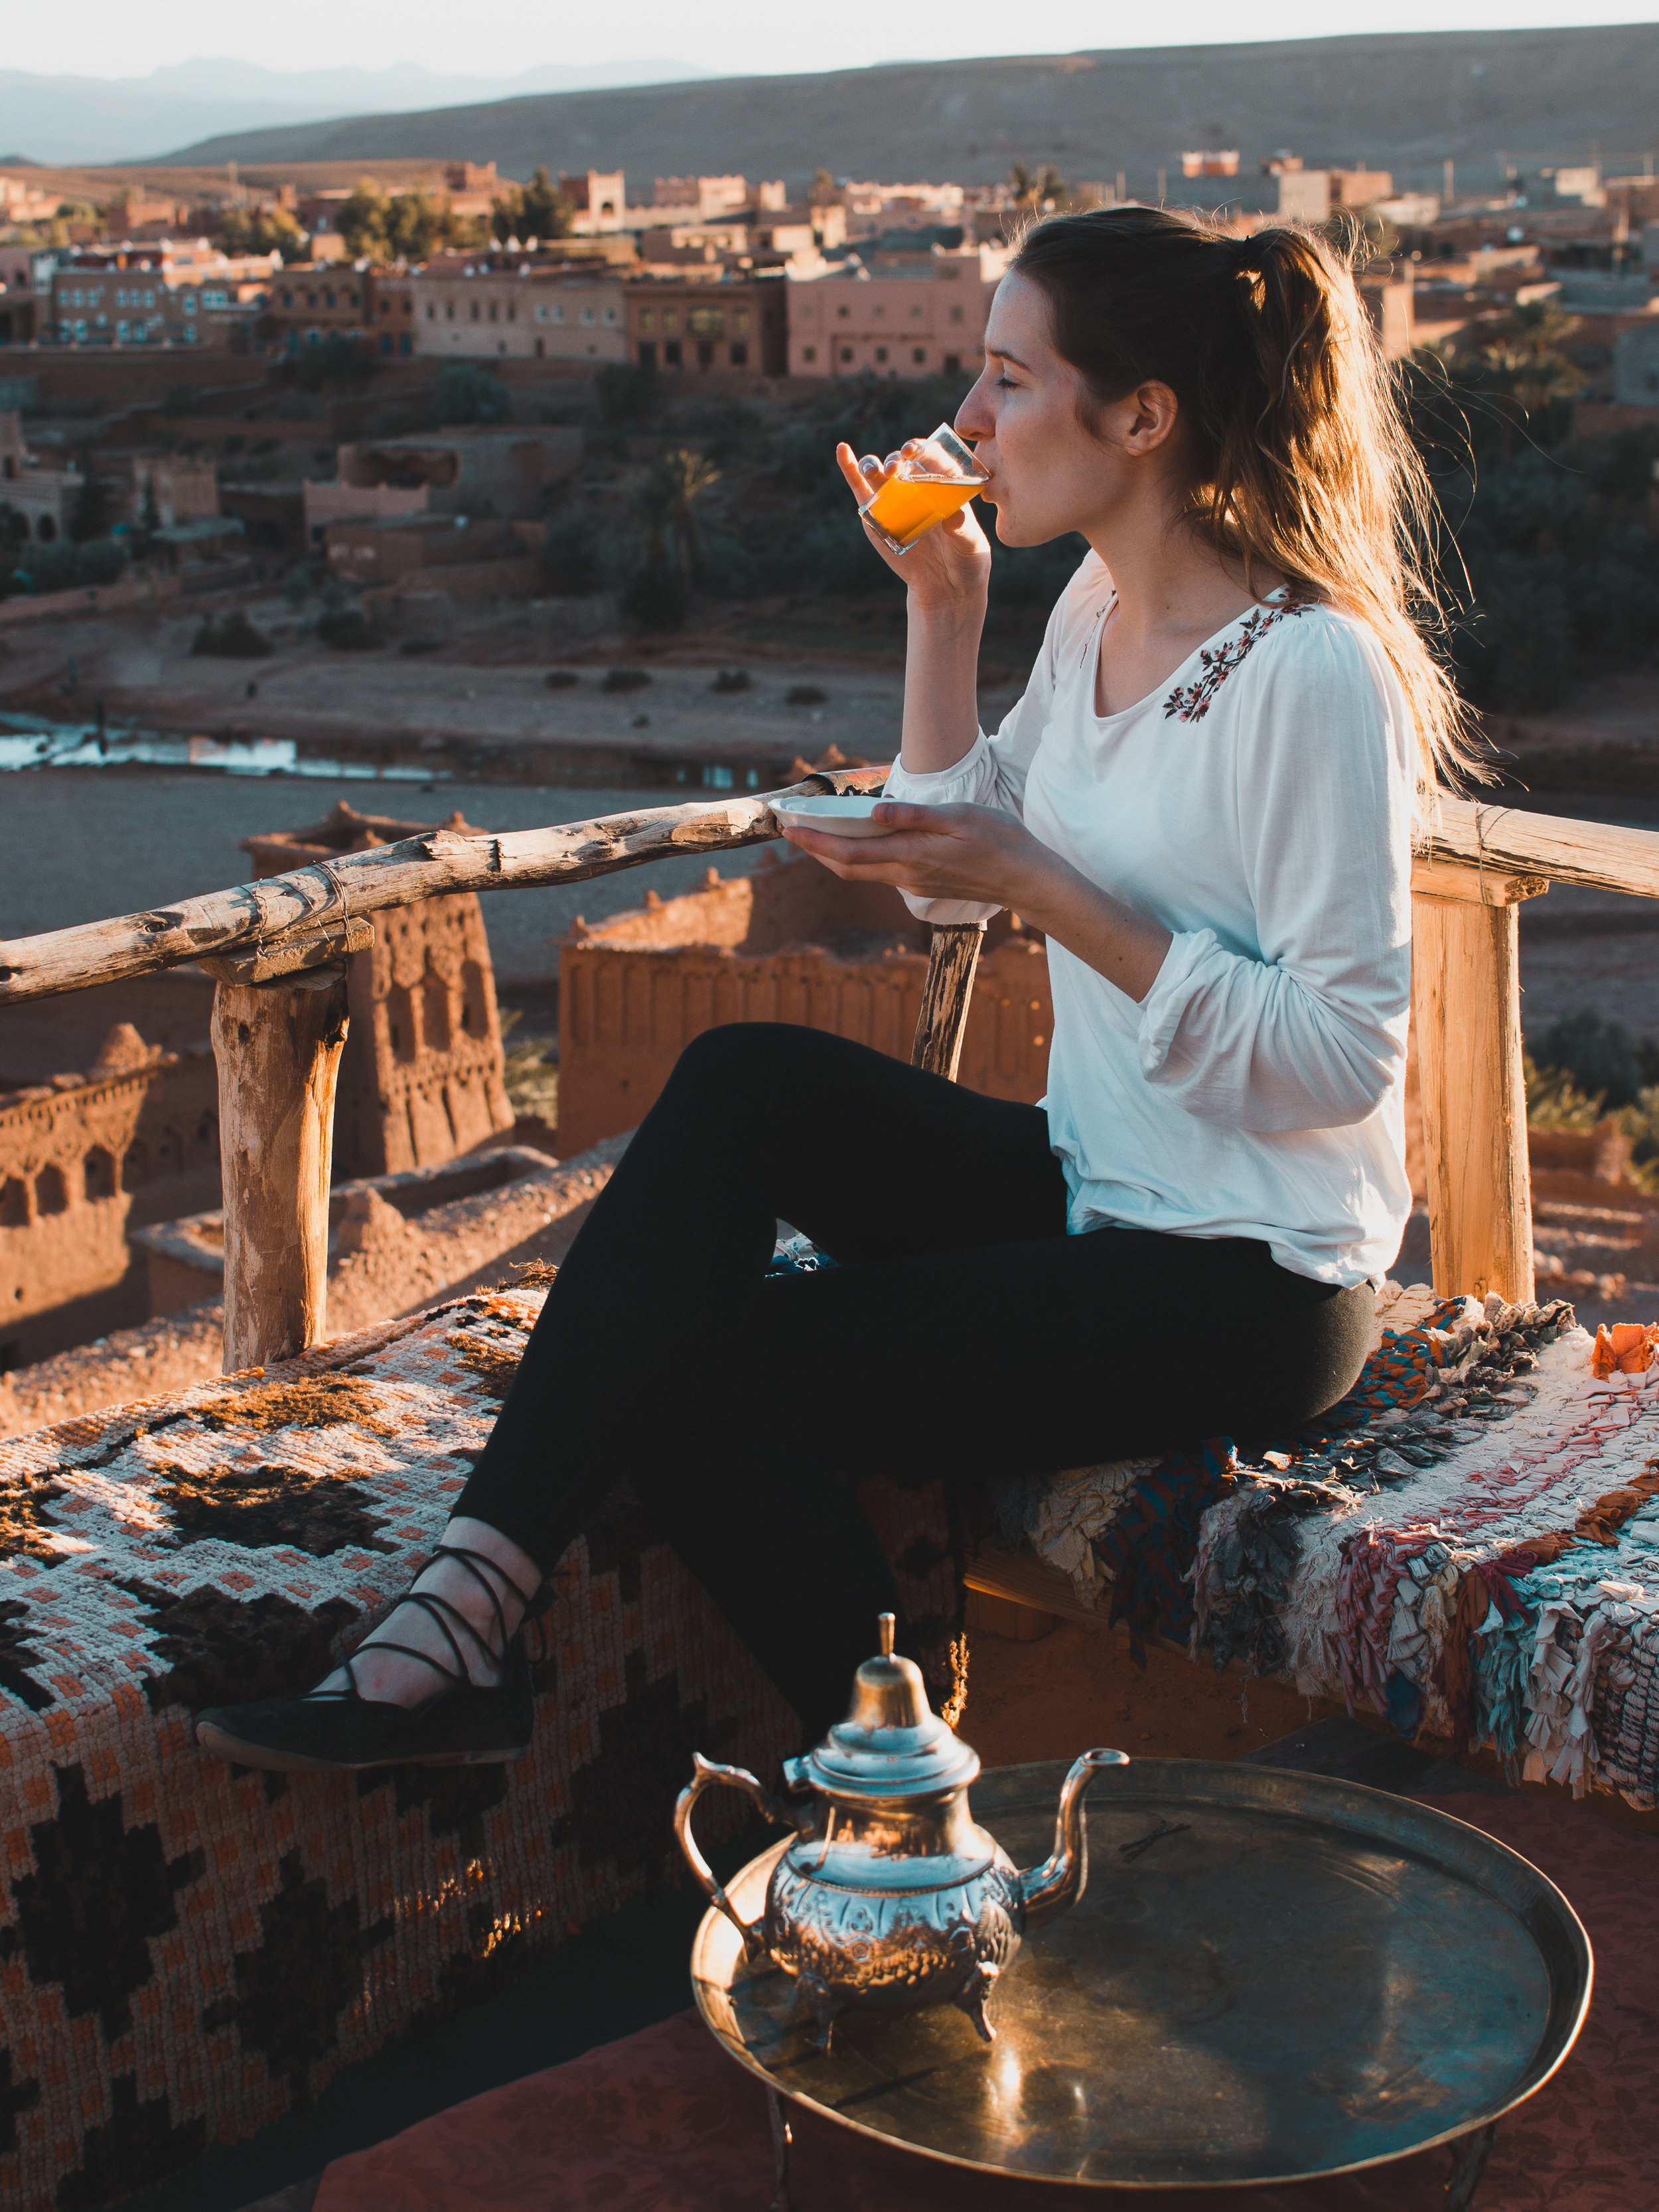 Mint tea and the most stunning view at Ait Benhaddou